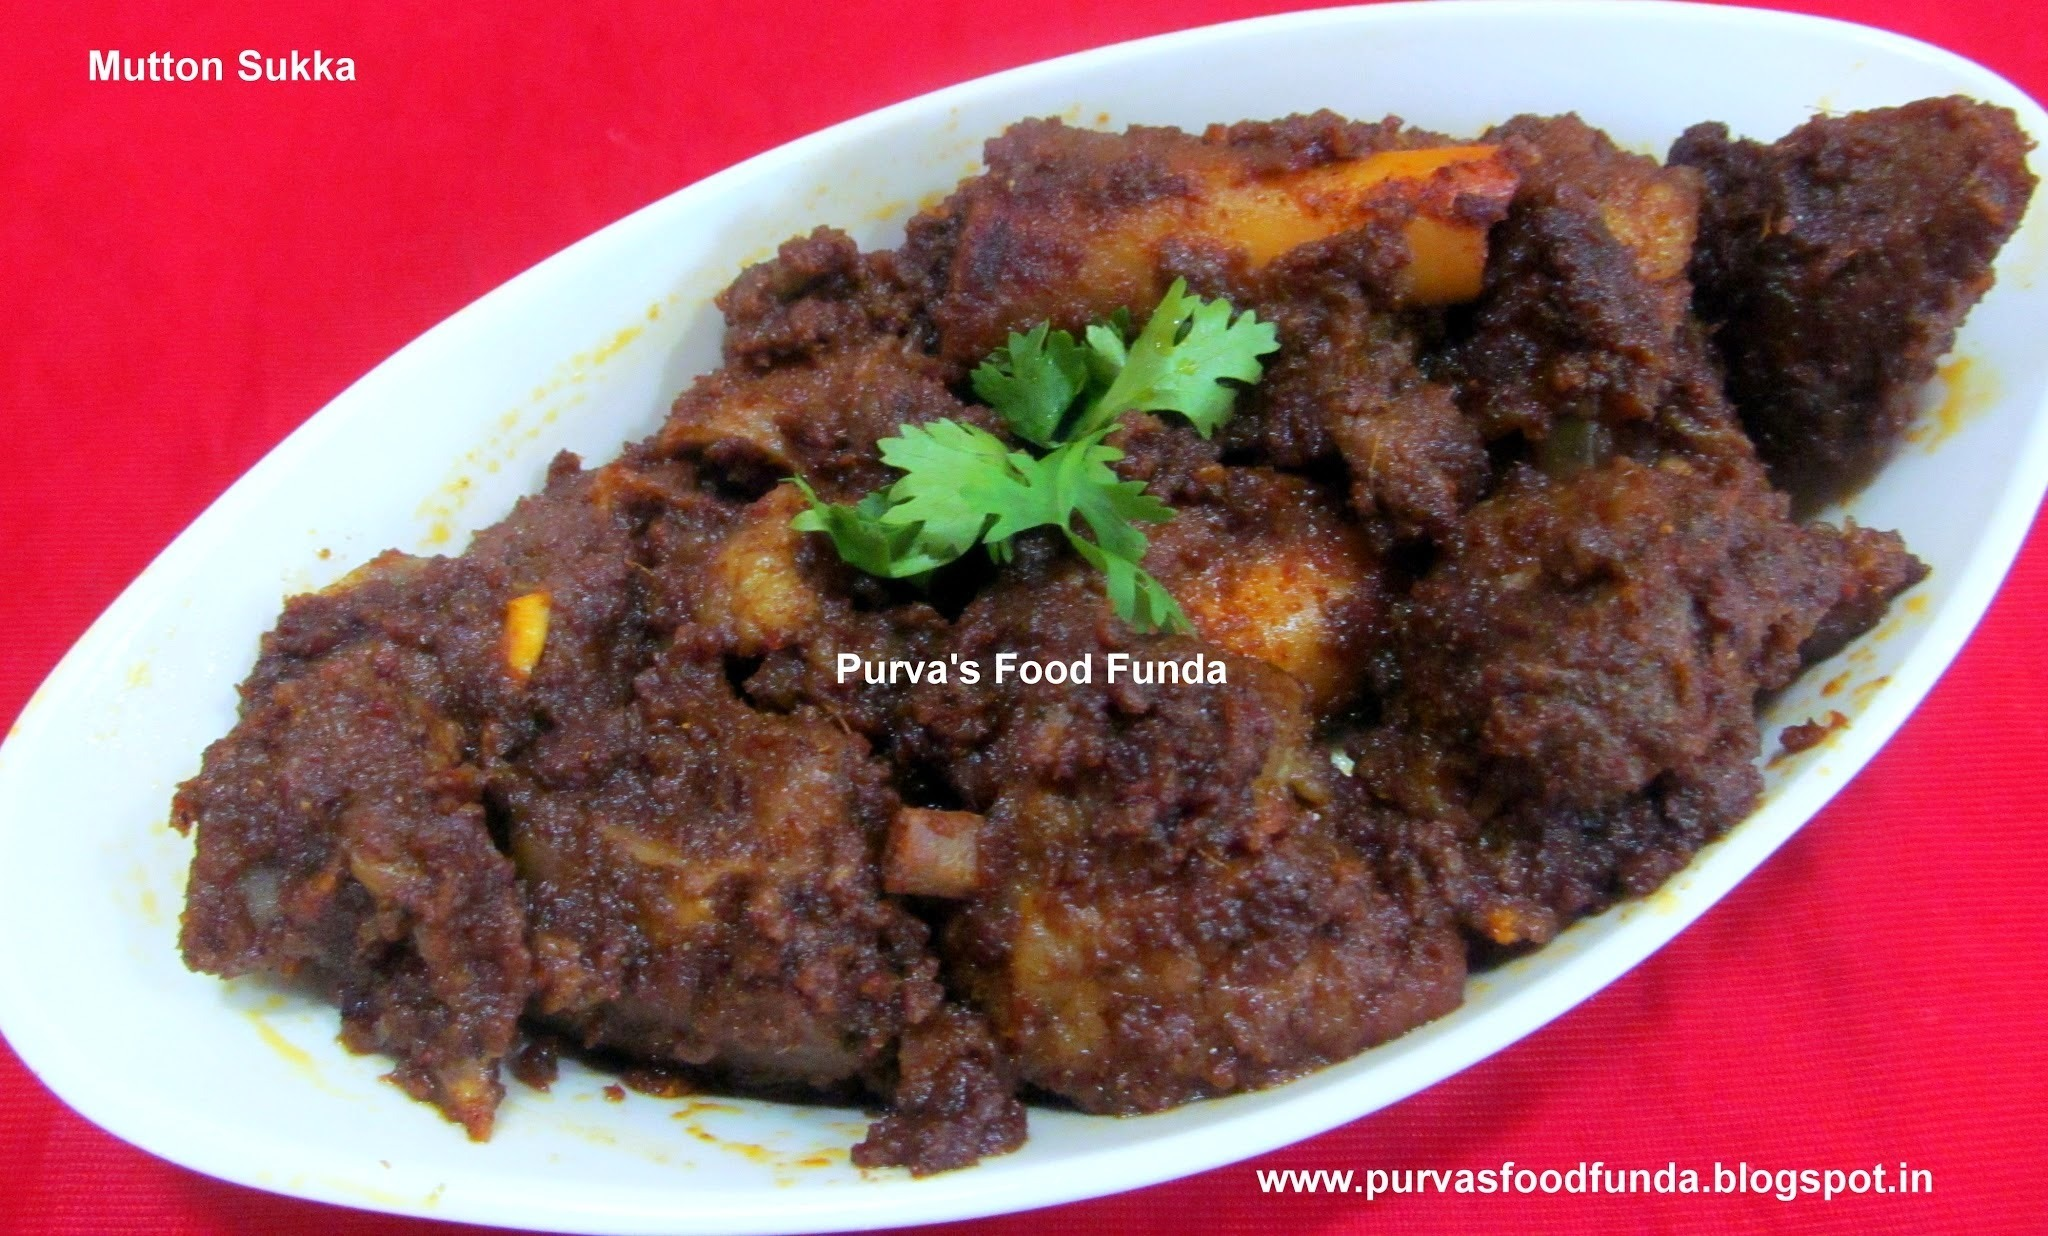 Dry Mutton Curry (Mutton Sukka or Mutton Sukka Fry)